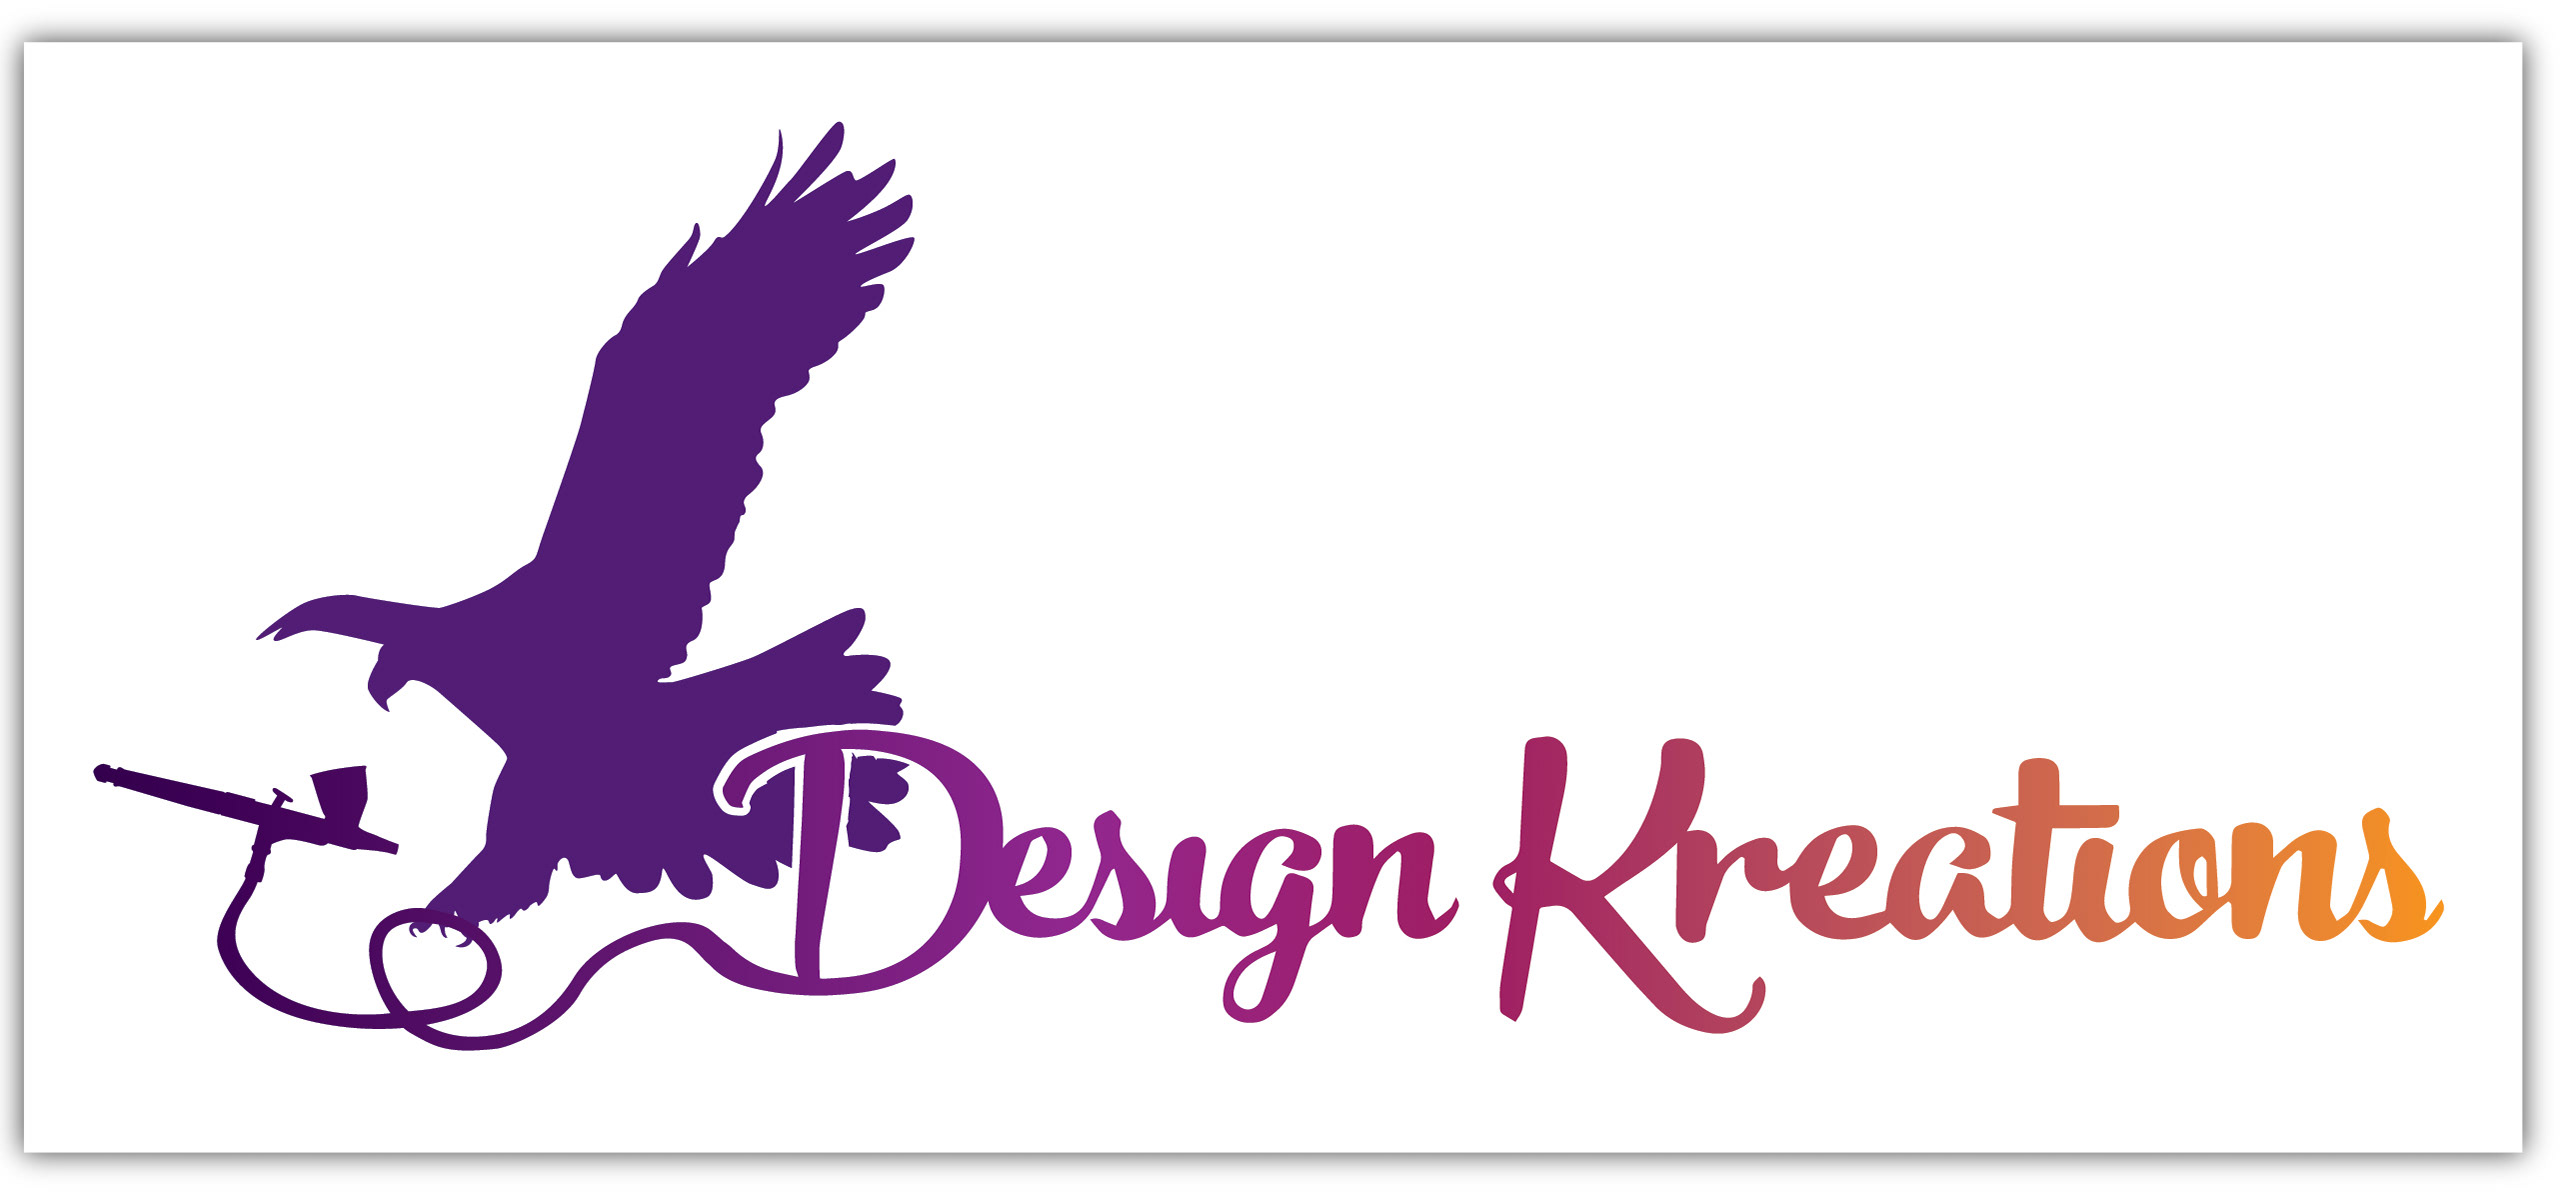 Design Kreations